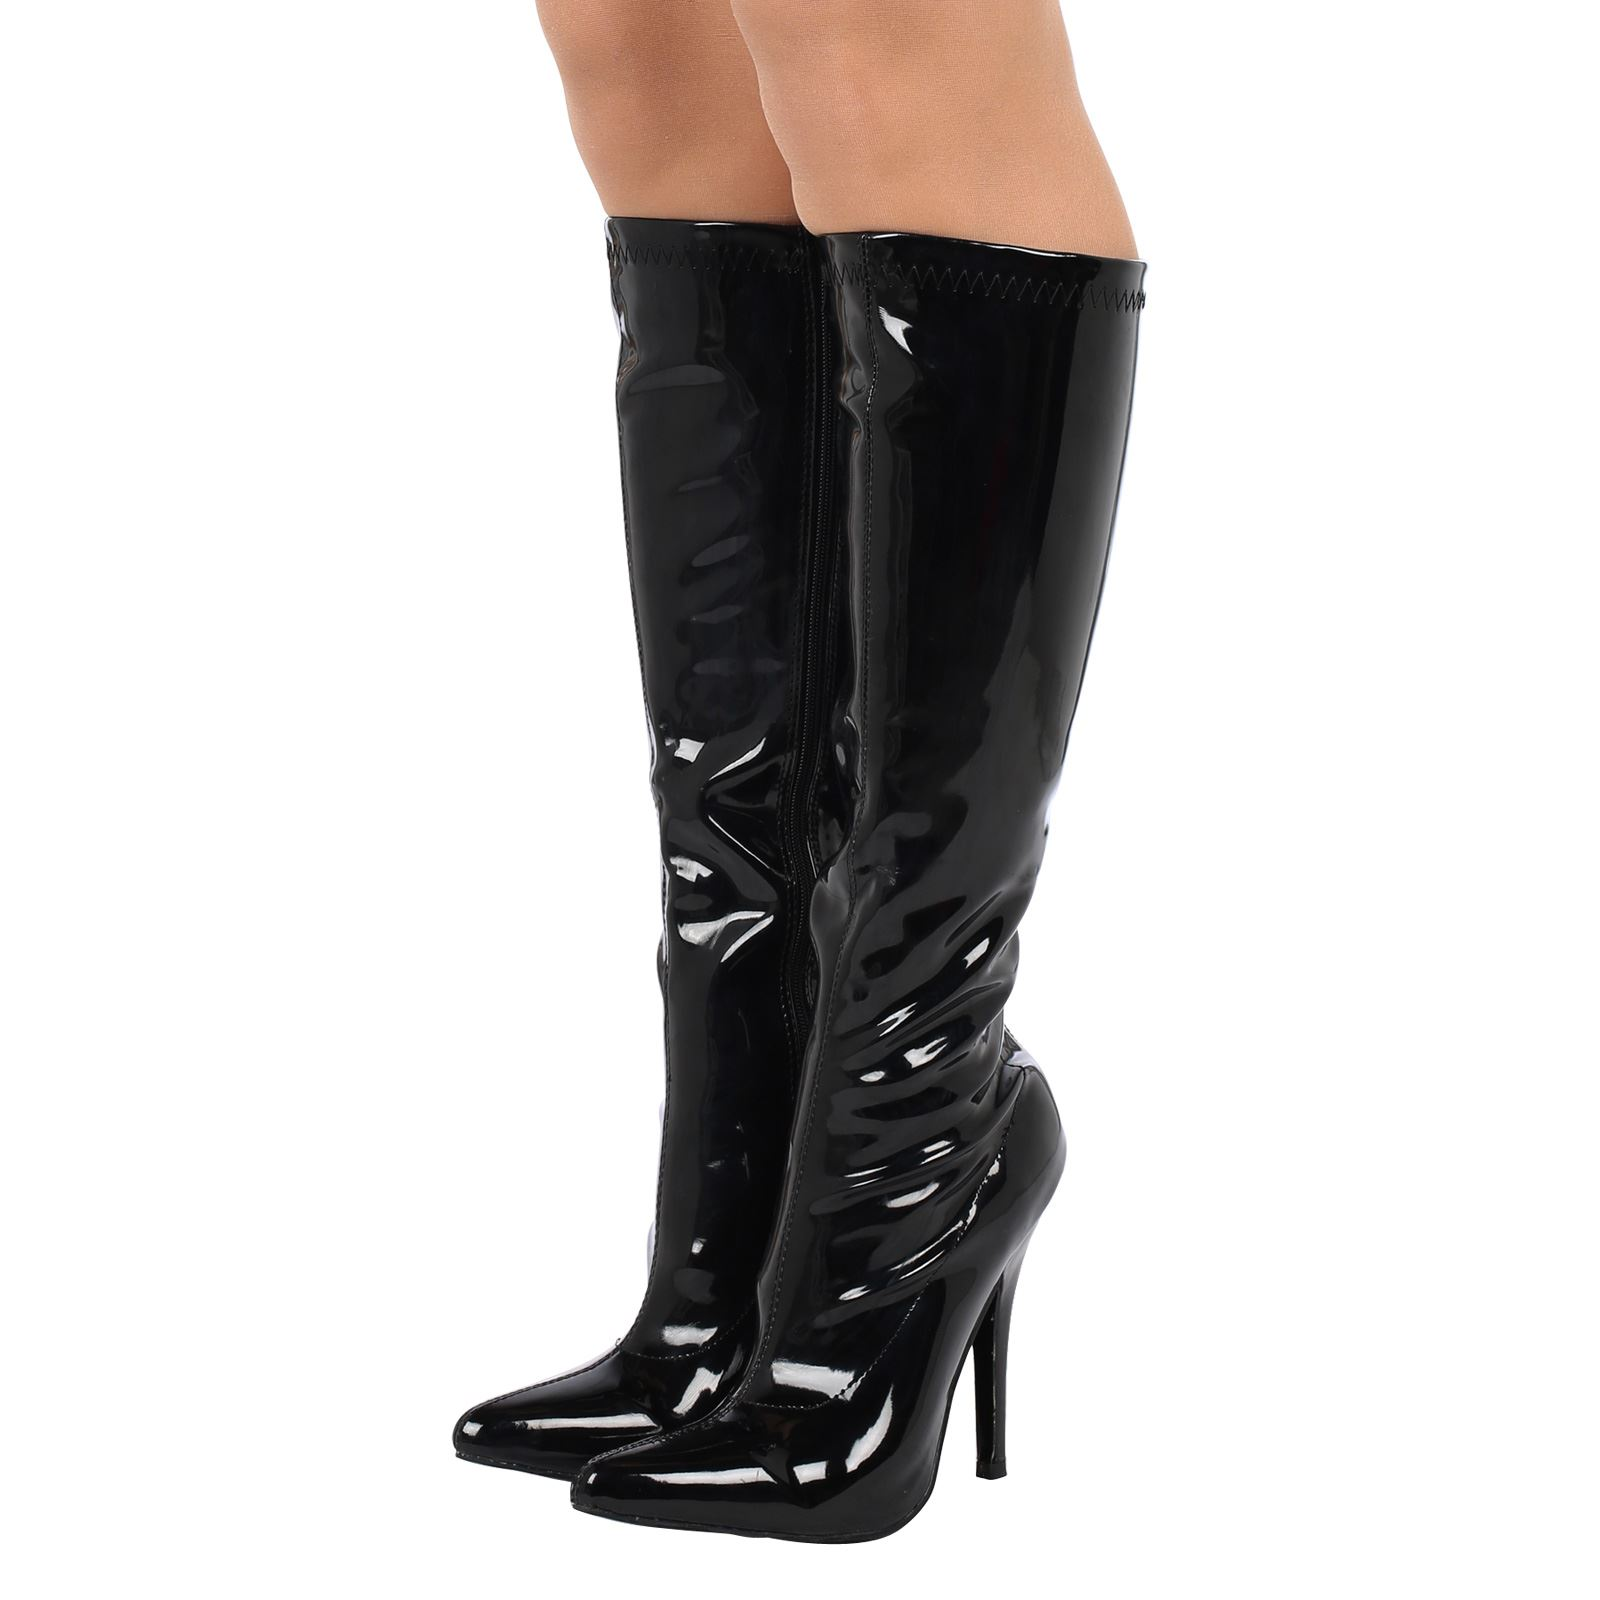 Shop Over-the-knee boots at qrqceh.tk & browse our latest collection of accessibly priced Over-the-knee boots for Women, in a wide variety of on-trend styles.